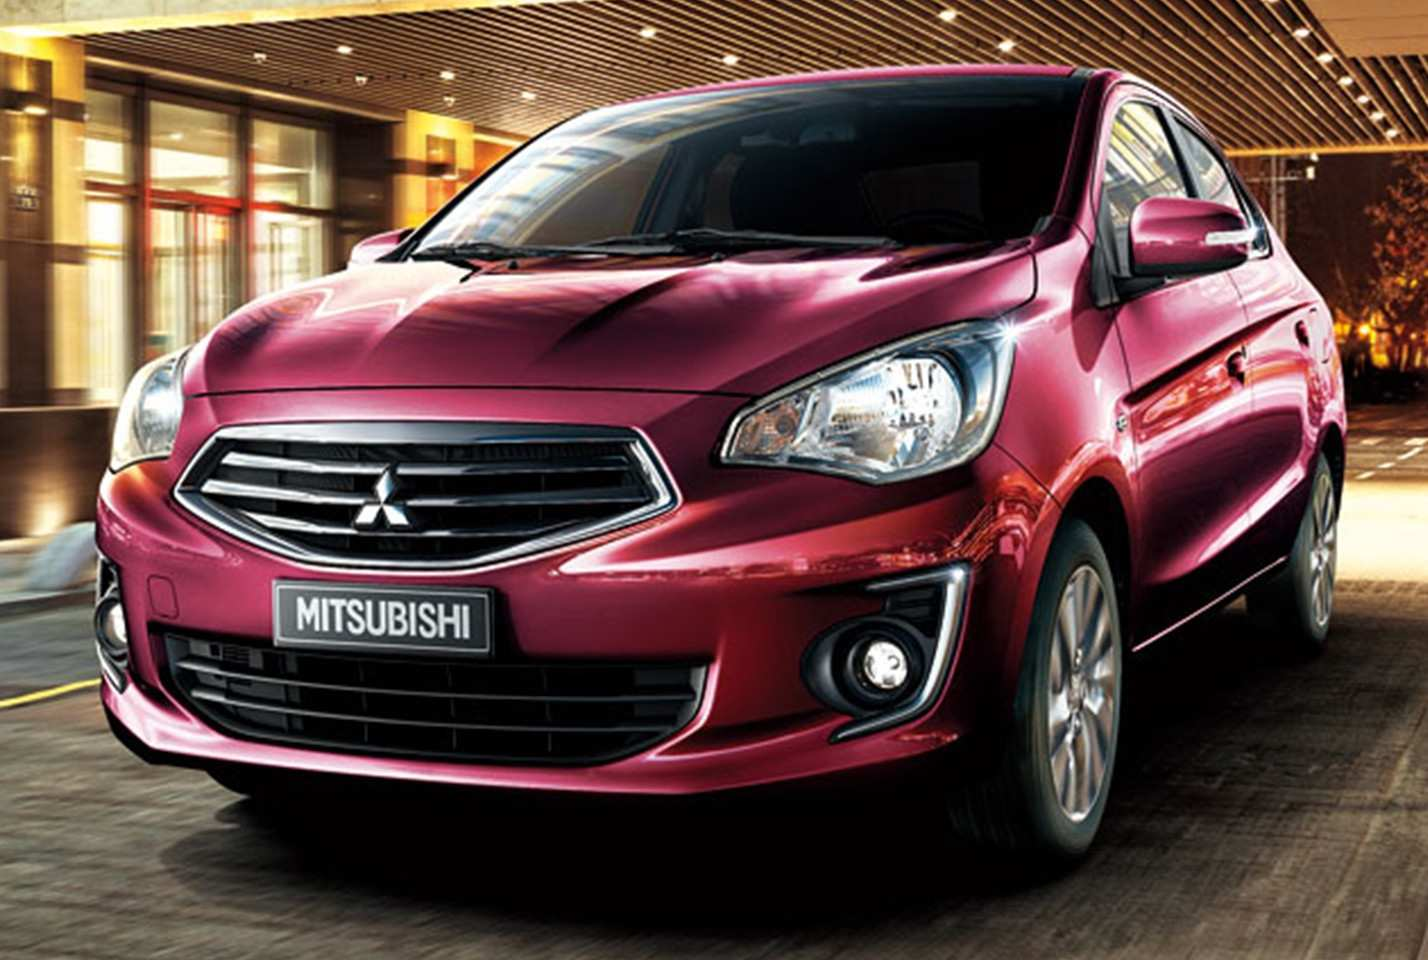 17 The Best New Mitsubishi Mirage 2020 Price And Review